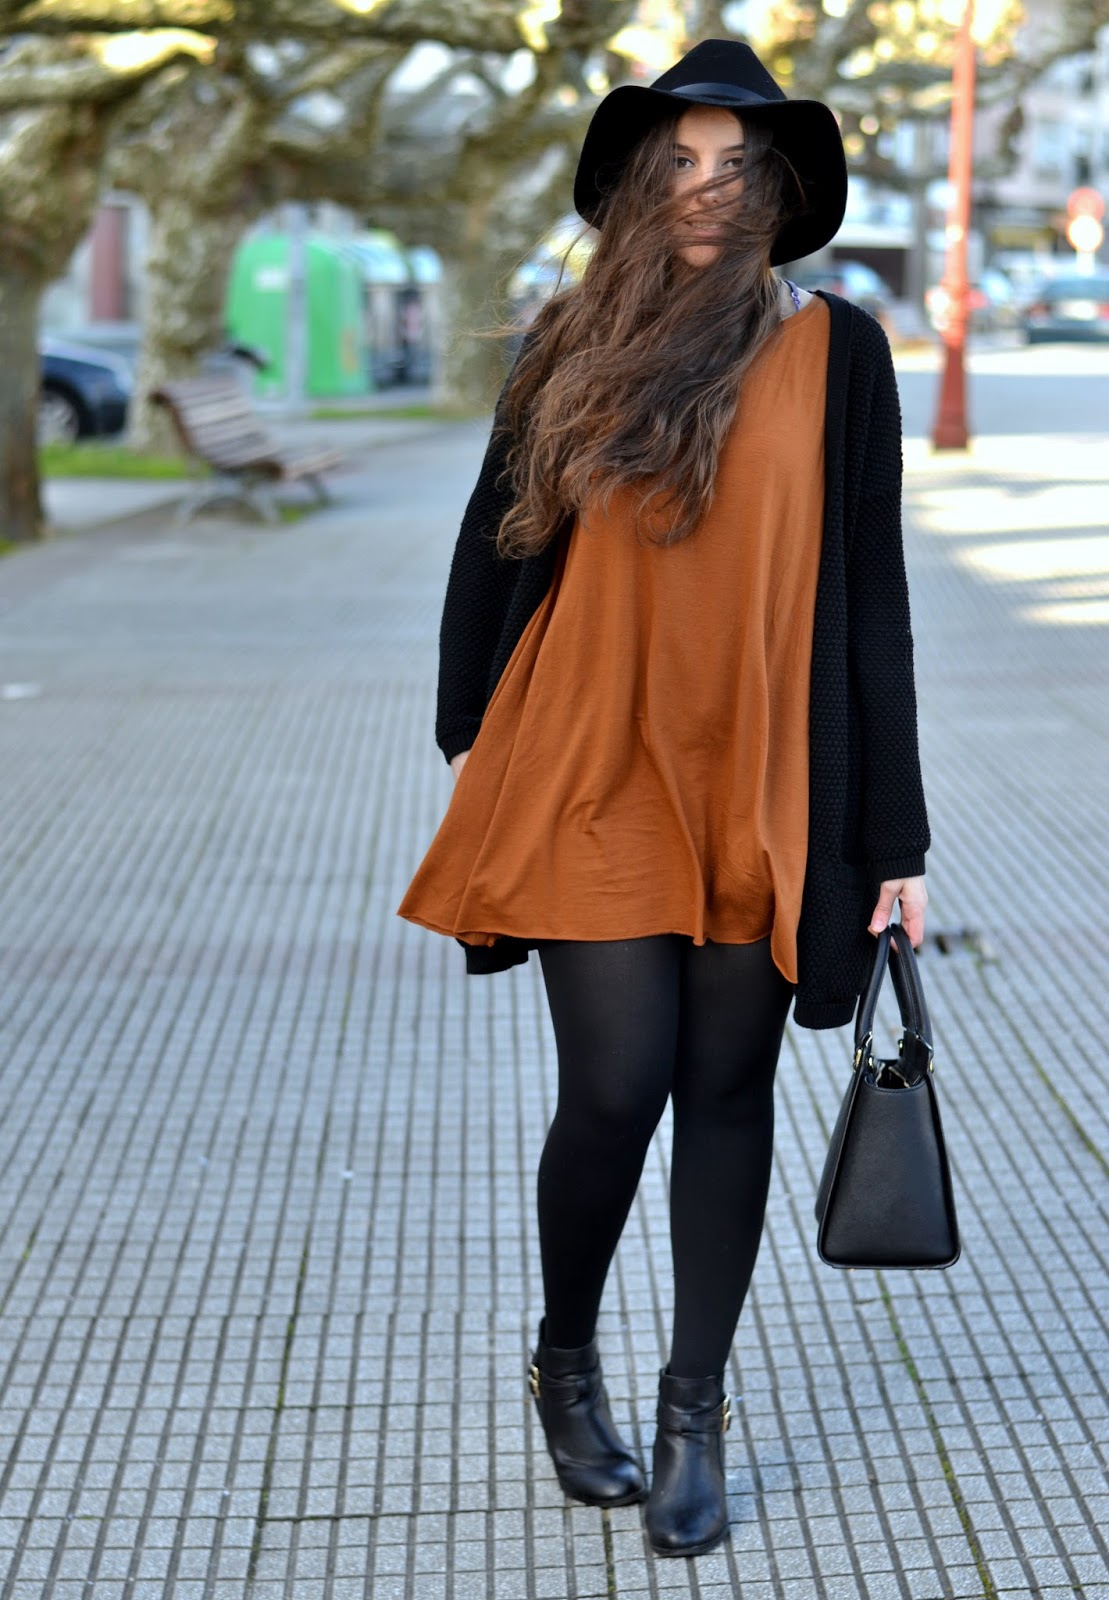 shirt like dress bershka